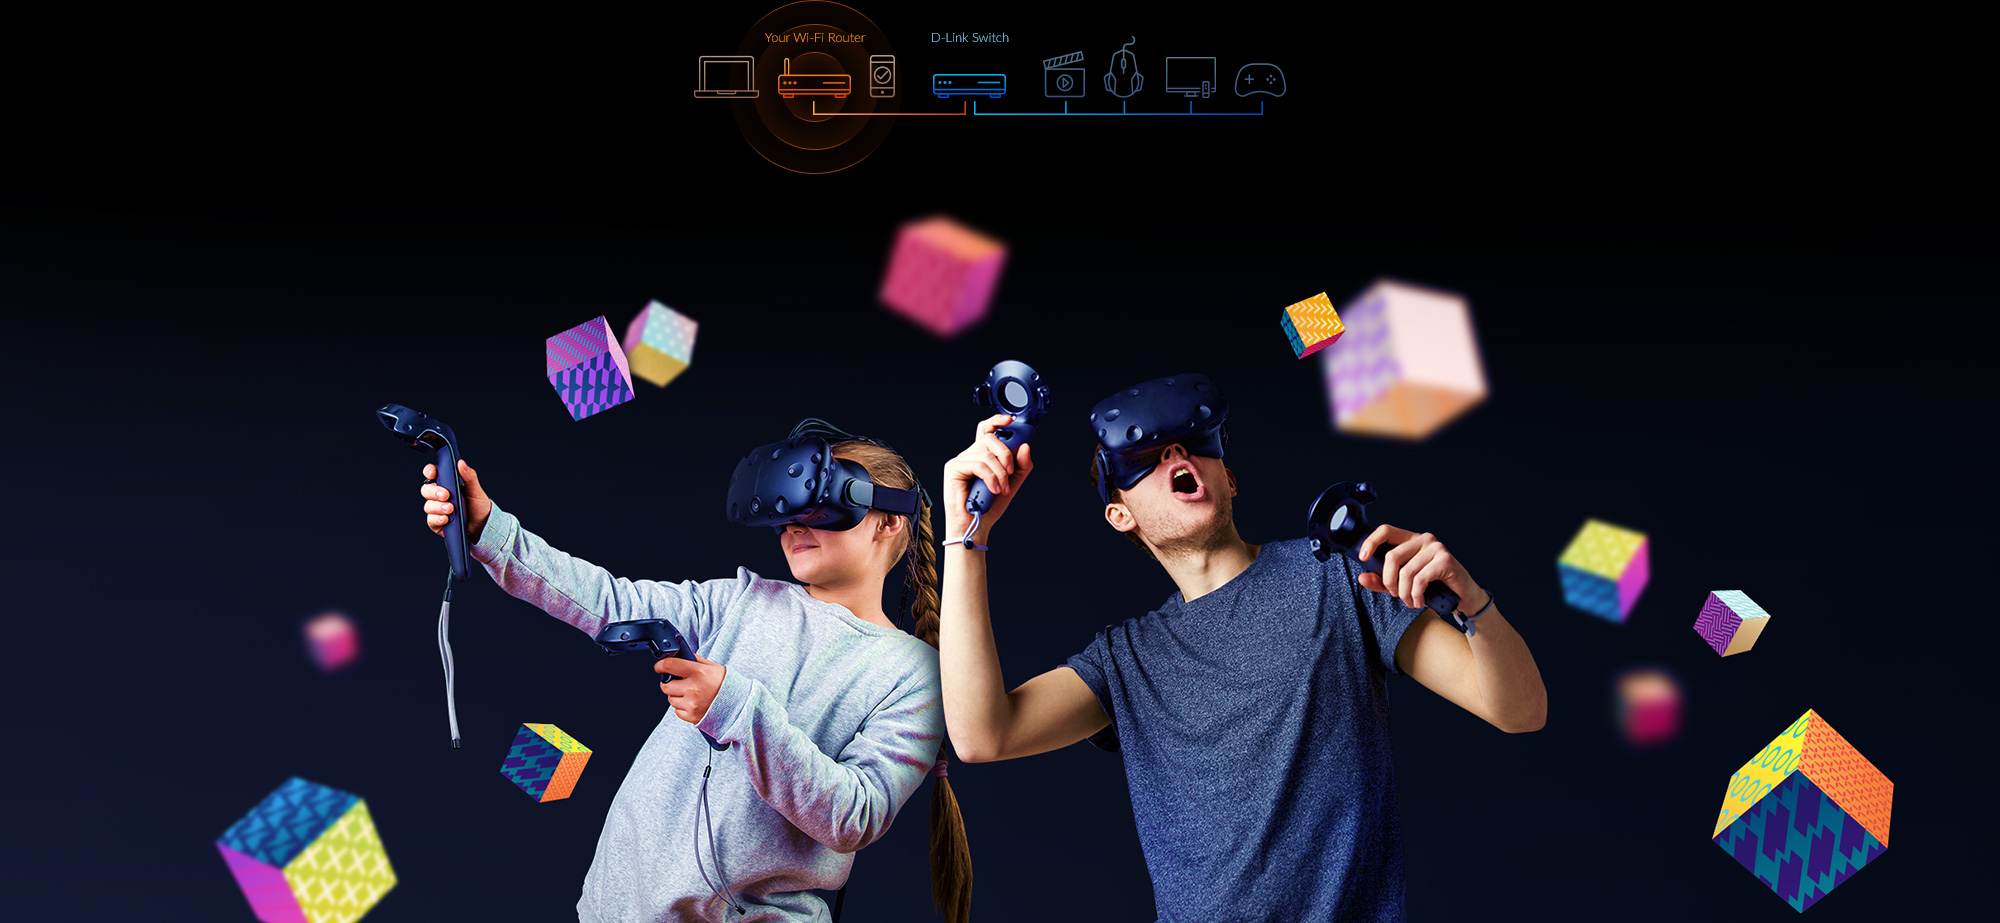 boy and girl playing VR games